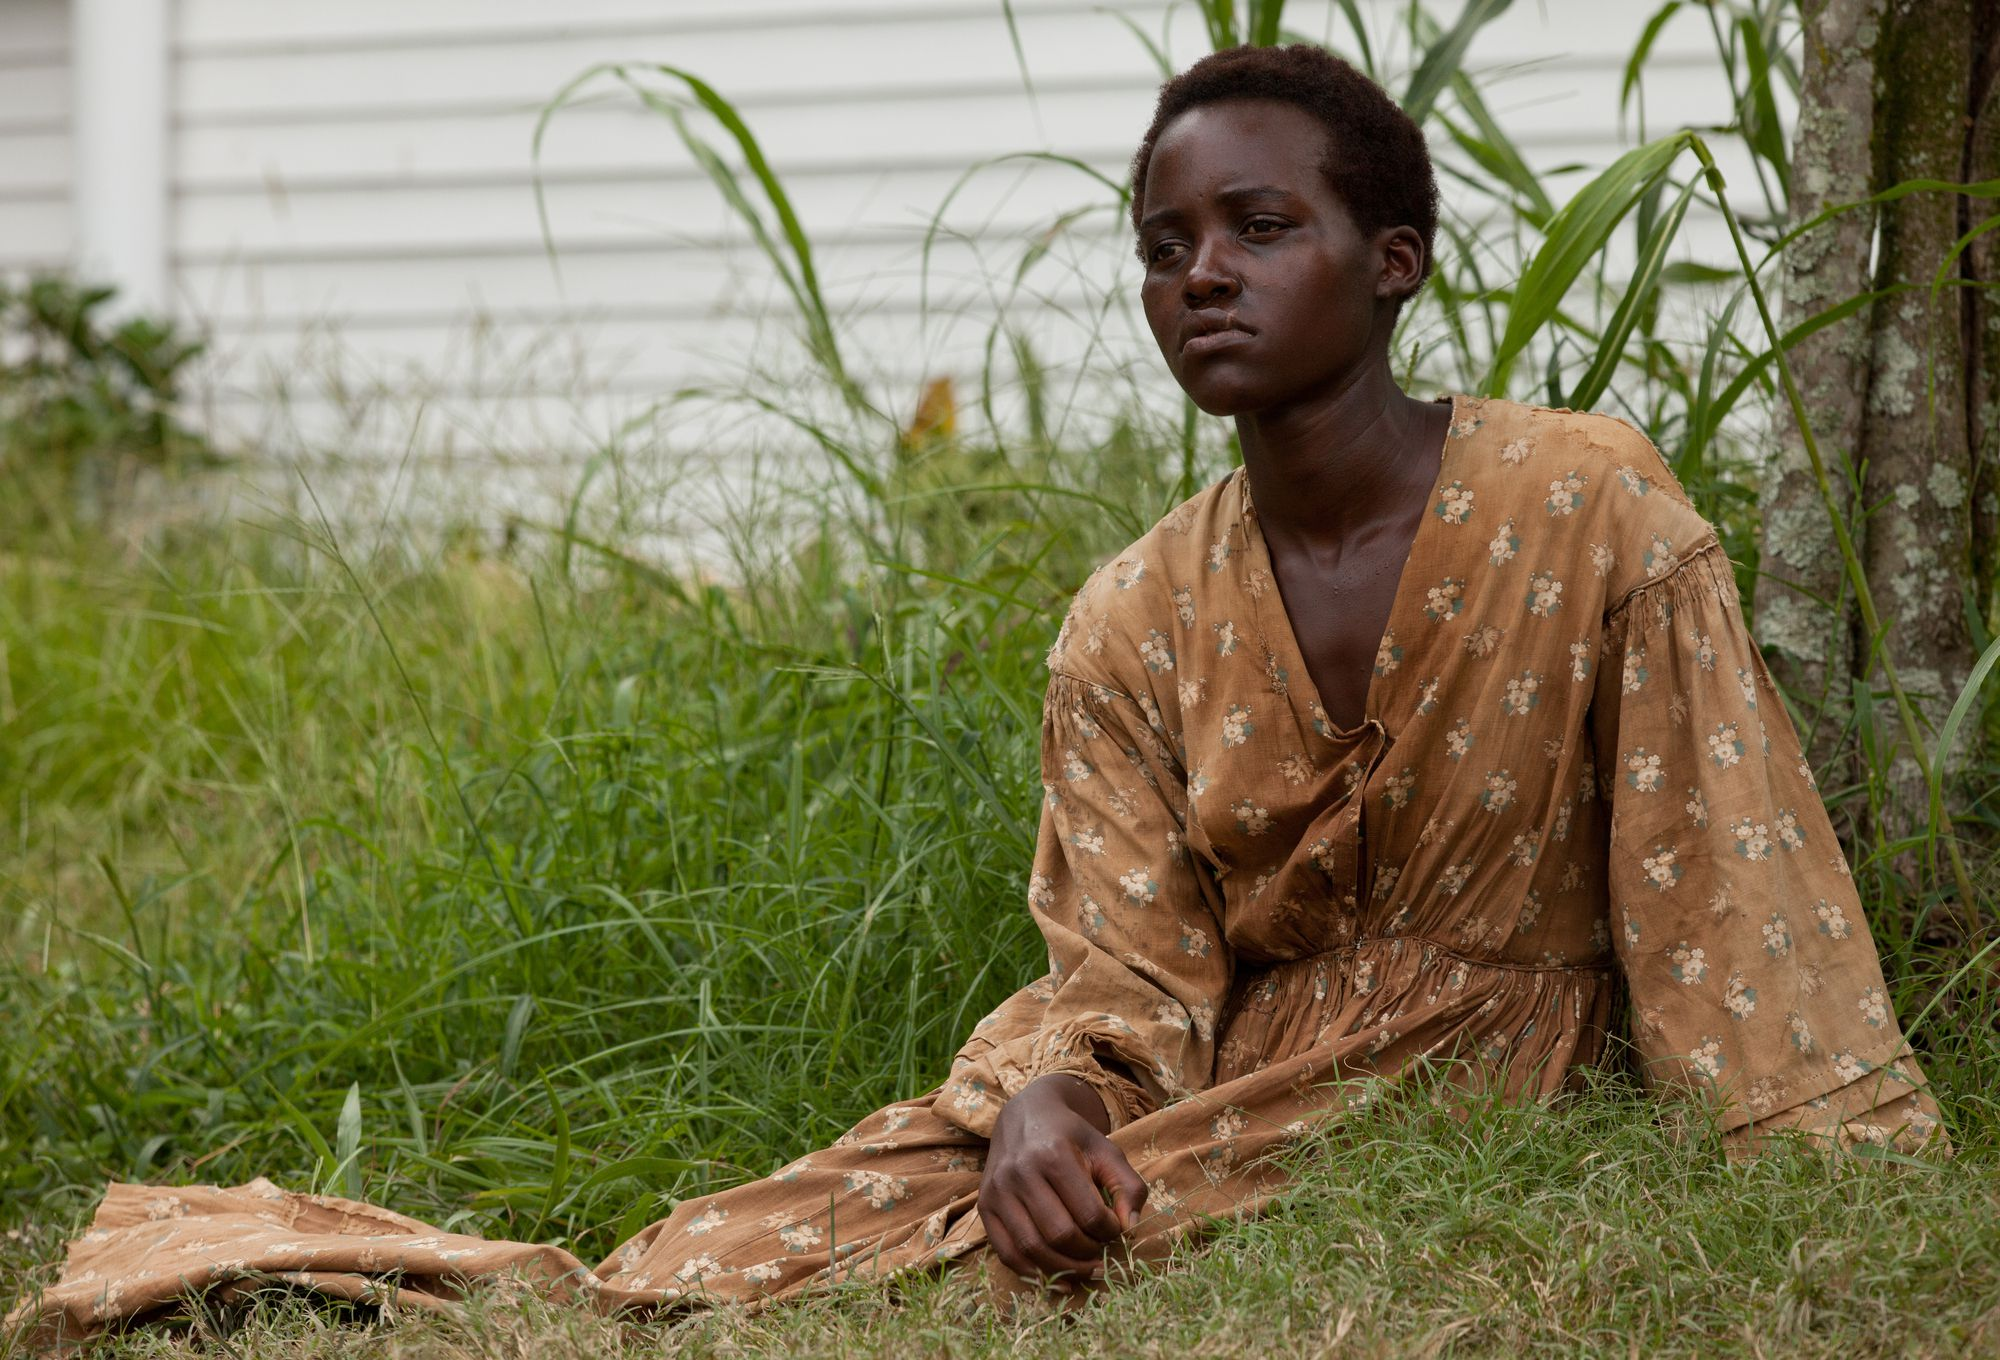 On the Rise: Lupita Nyong'o, the Awards-Bound Breakout of 12 Years a Slave